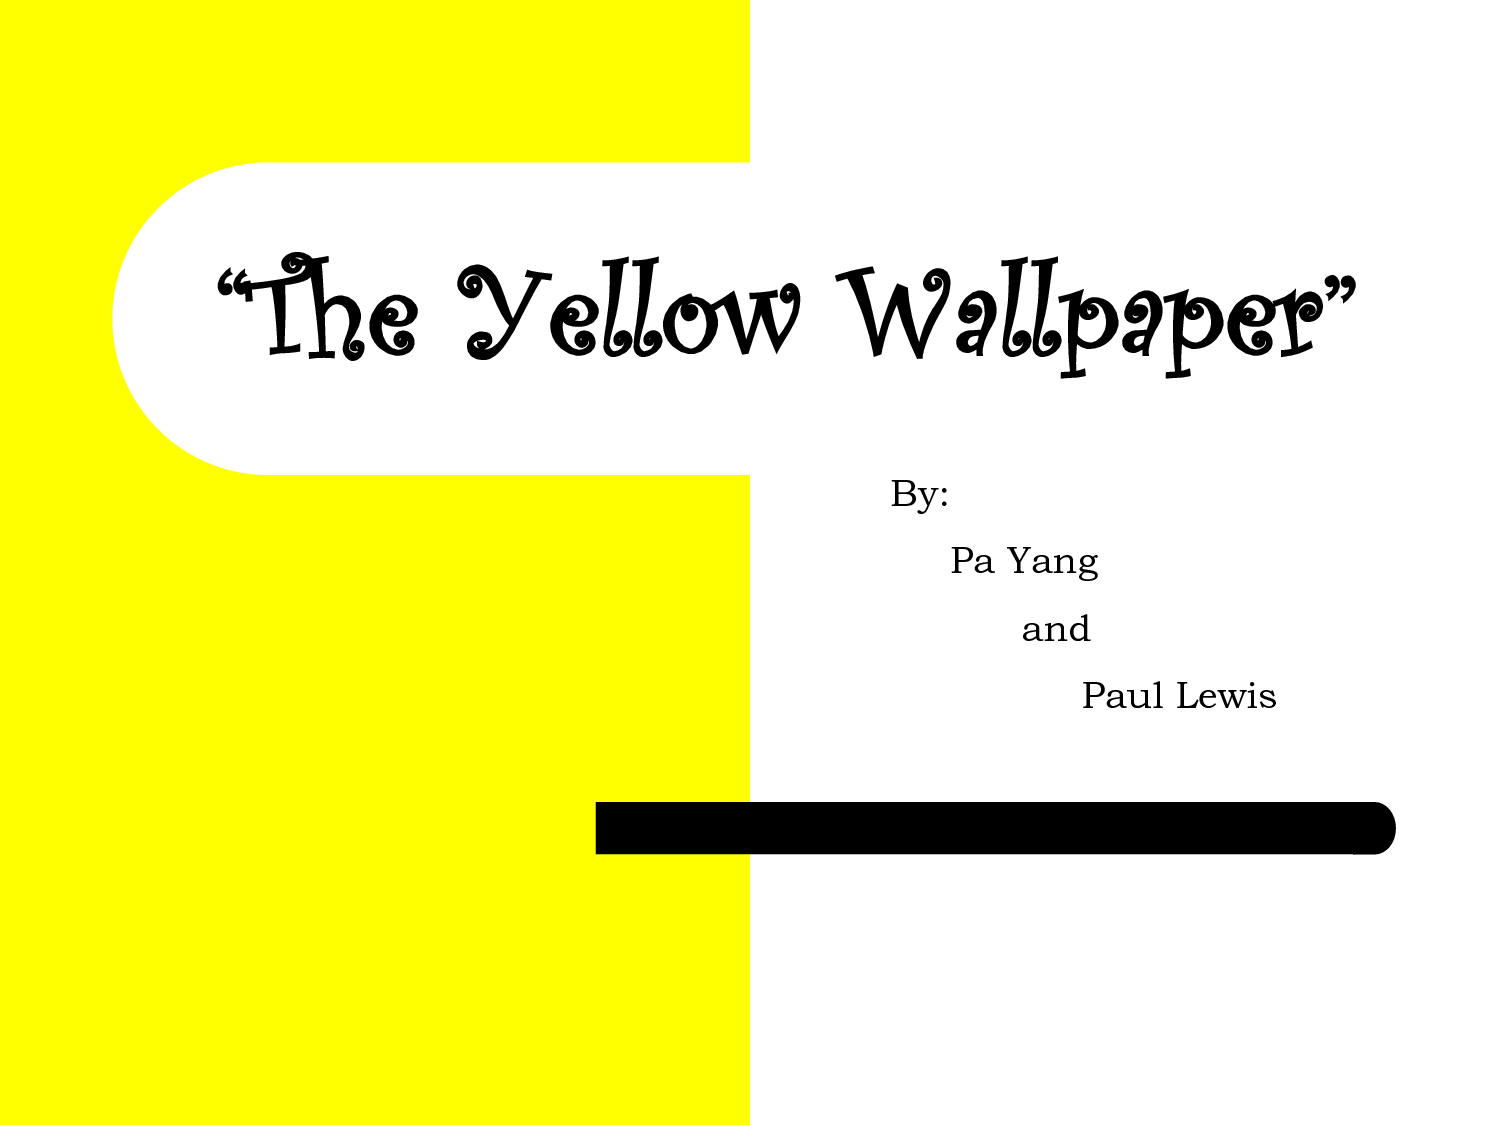 the yellow wallpaper essay As she becomes more fanatical with the wallpaper, we see her repulsion of it turn into an overexcited image of her perplexing and dizzying fall.